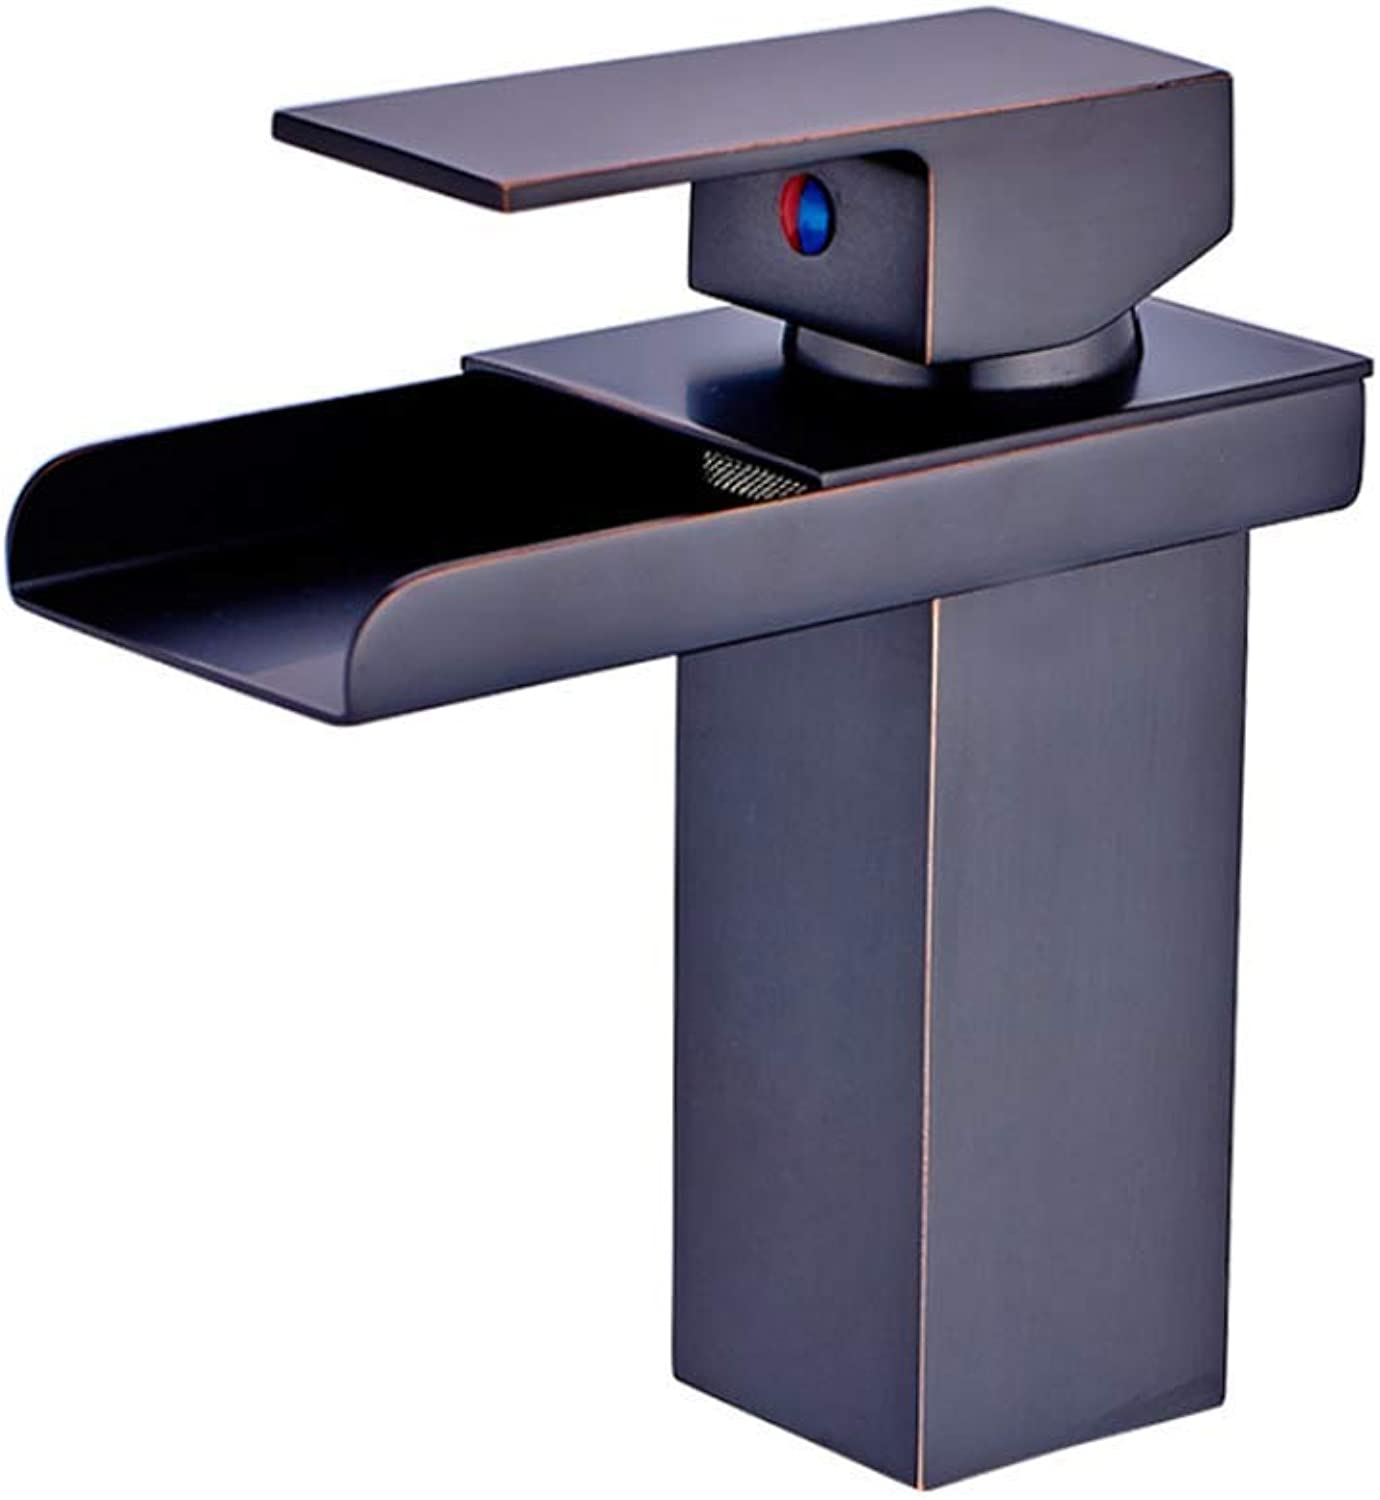 Pull Out The Pull Down Stainless Steelall Copper Black Bronze Modern Waterfall Shower Bath Basin Single Seat Single Seat Hot and Cold Water Faucet